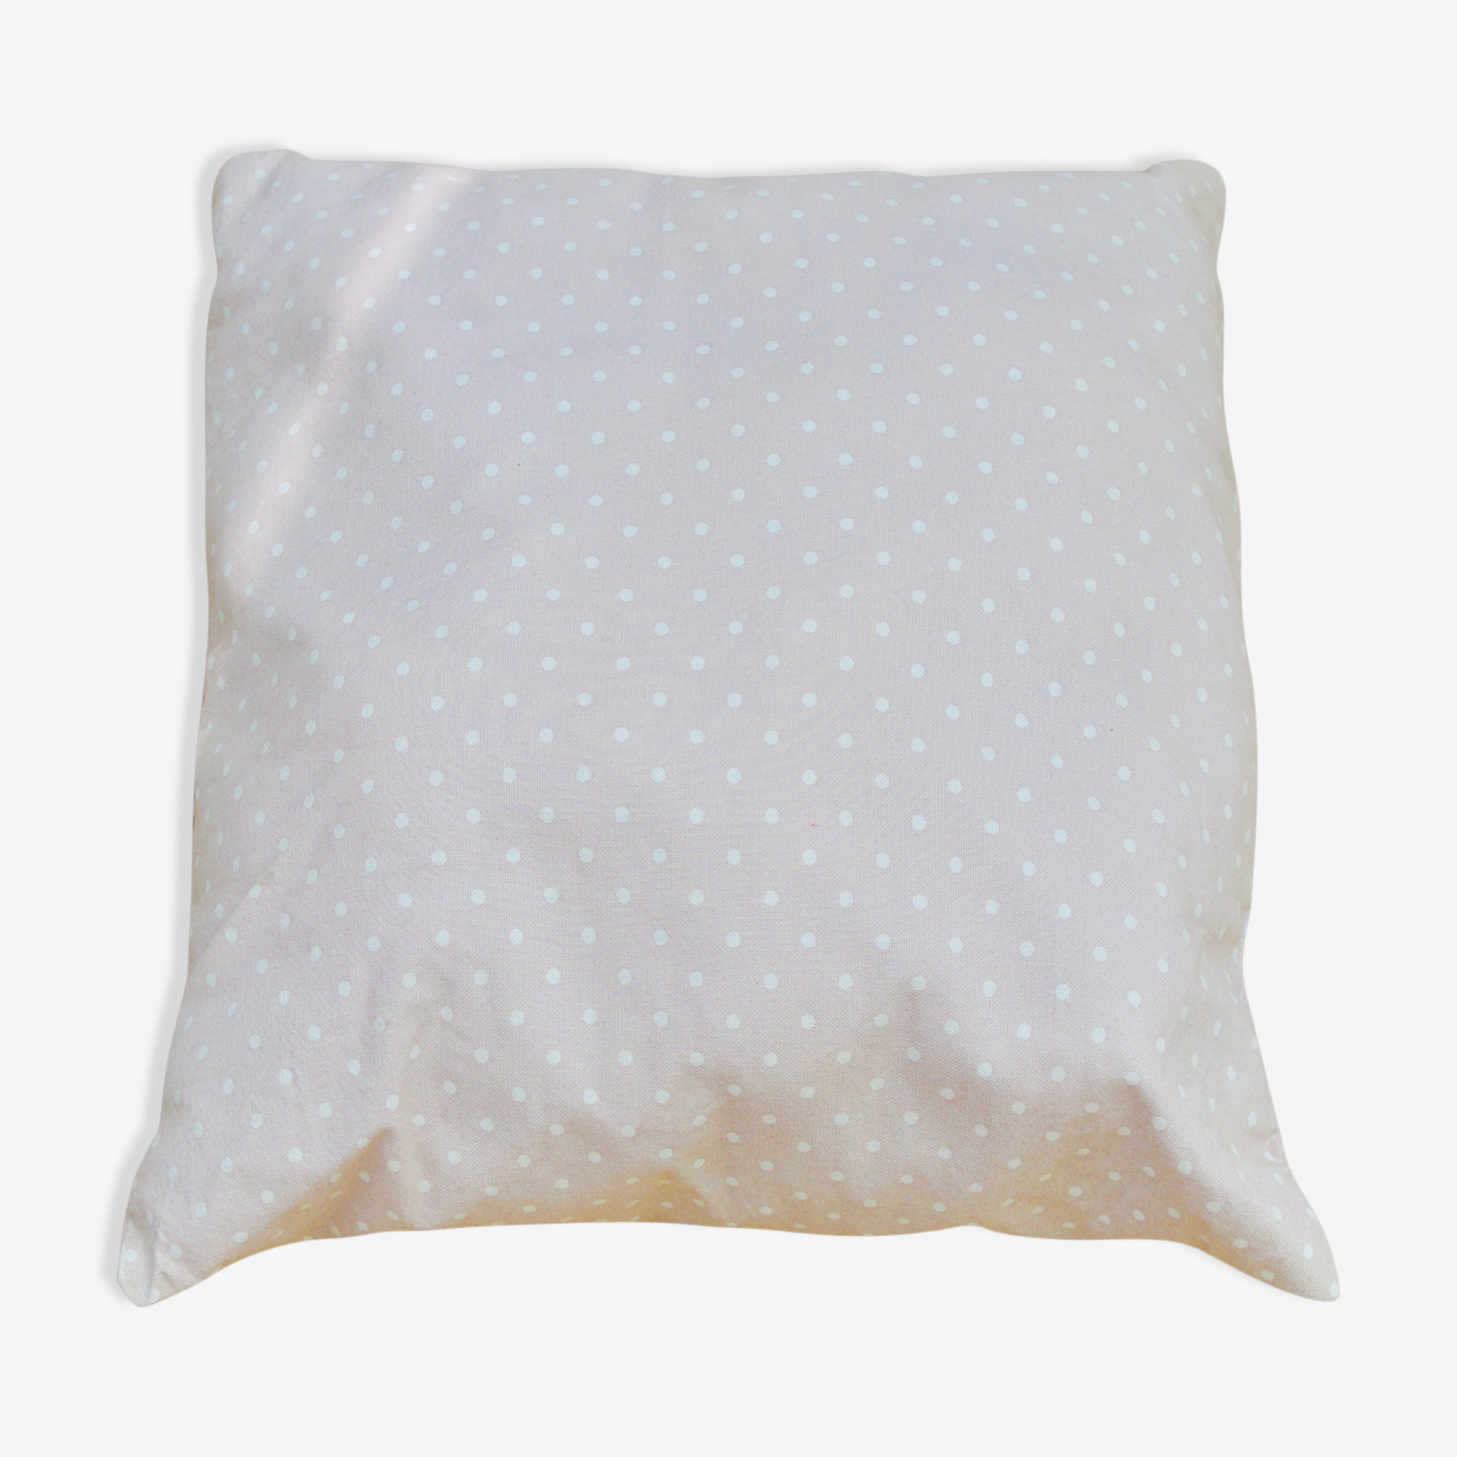 Cushion square pale pink with white polka dots